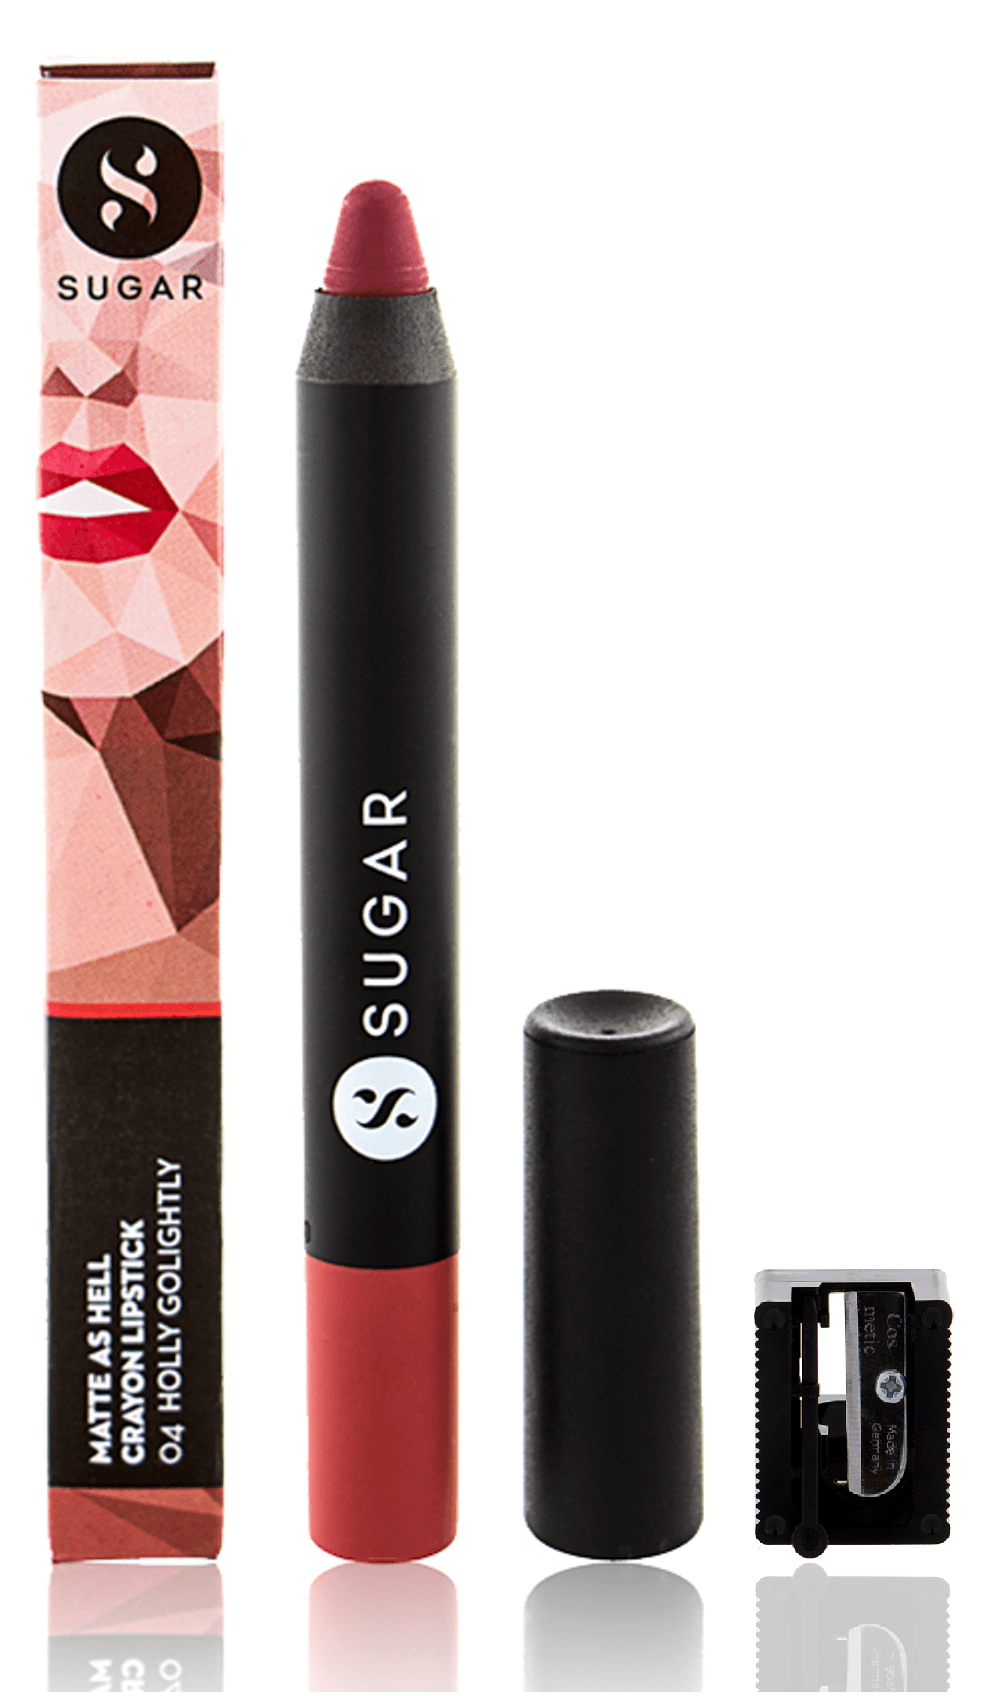 SUGAR Matte As Hell Crayon Lipstick - 04 Holly Golightly (Nude)